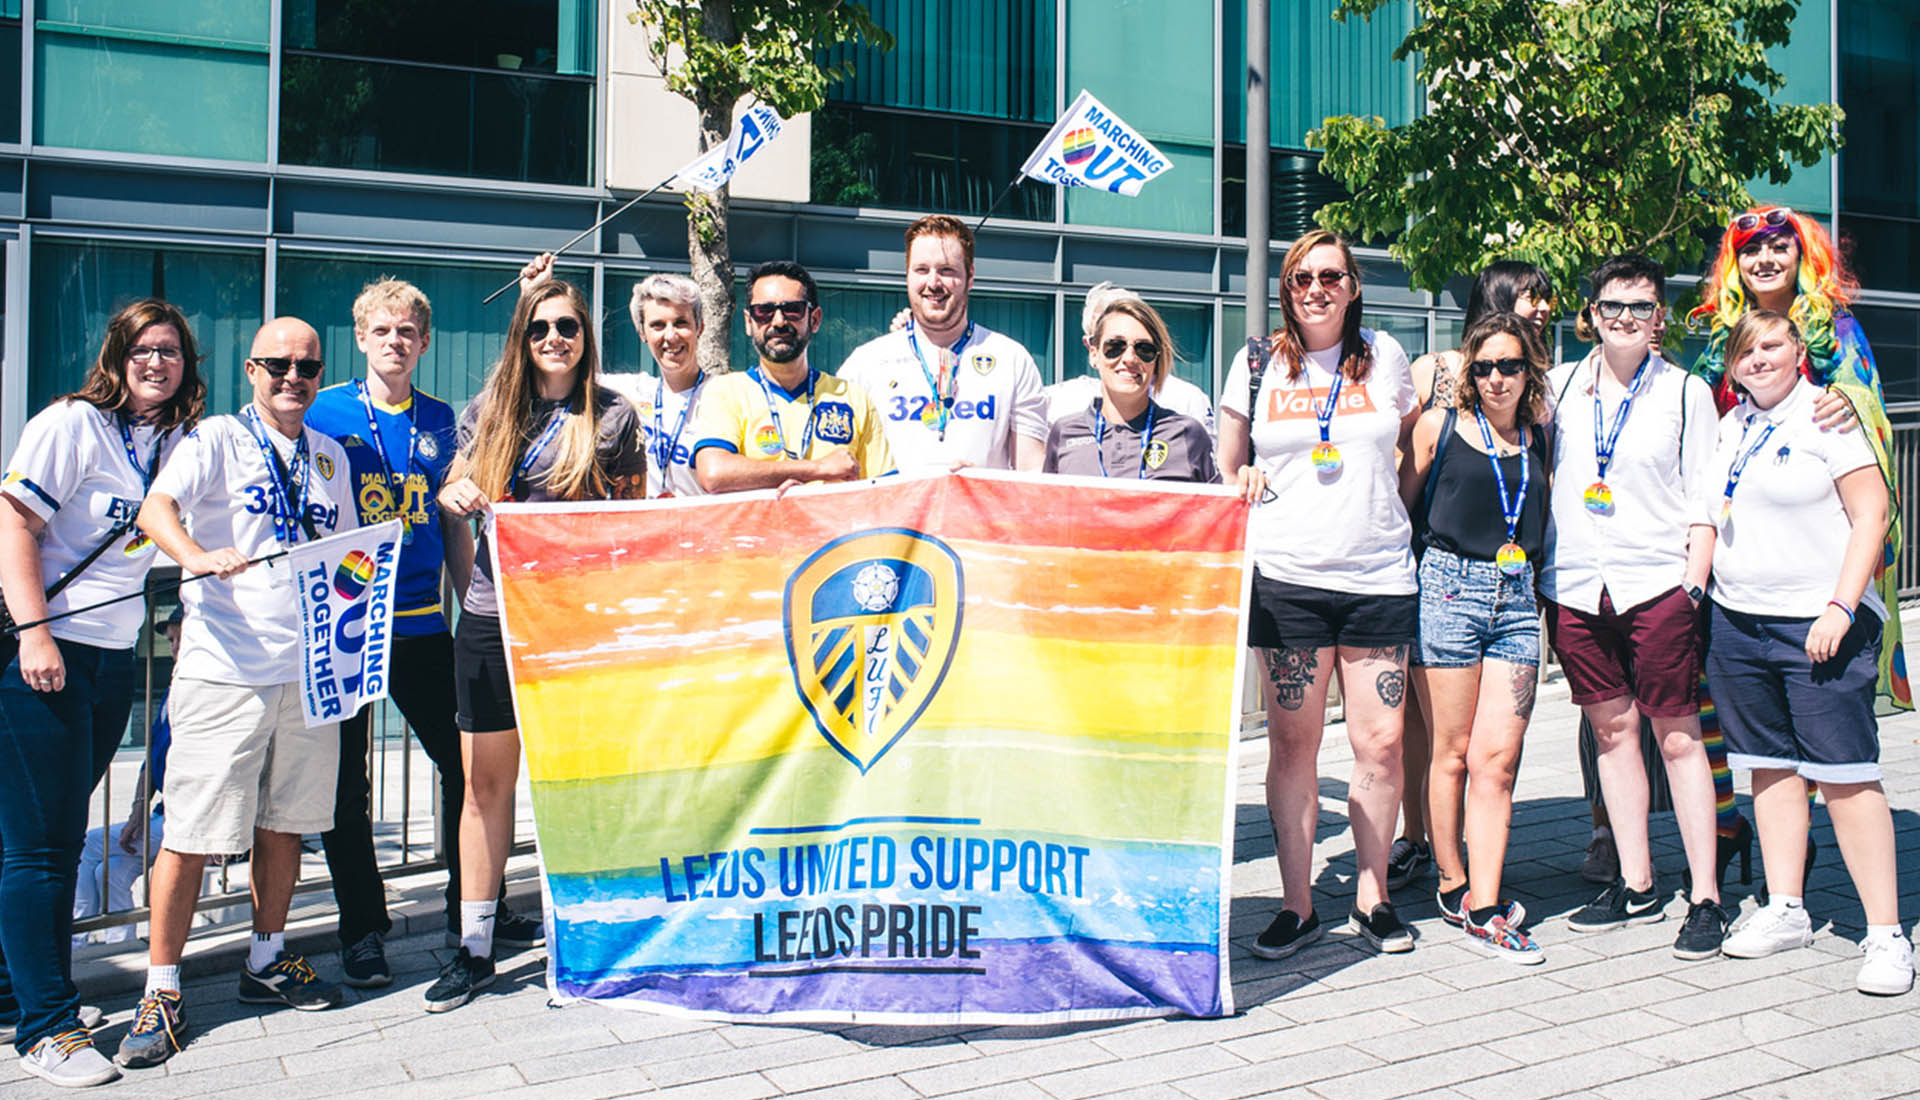 Leeds Marching On Together_0000_Marching Out Together - Pride-16.jpg